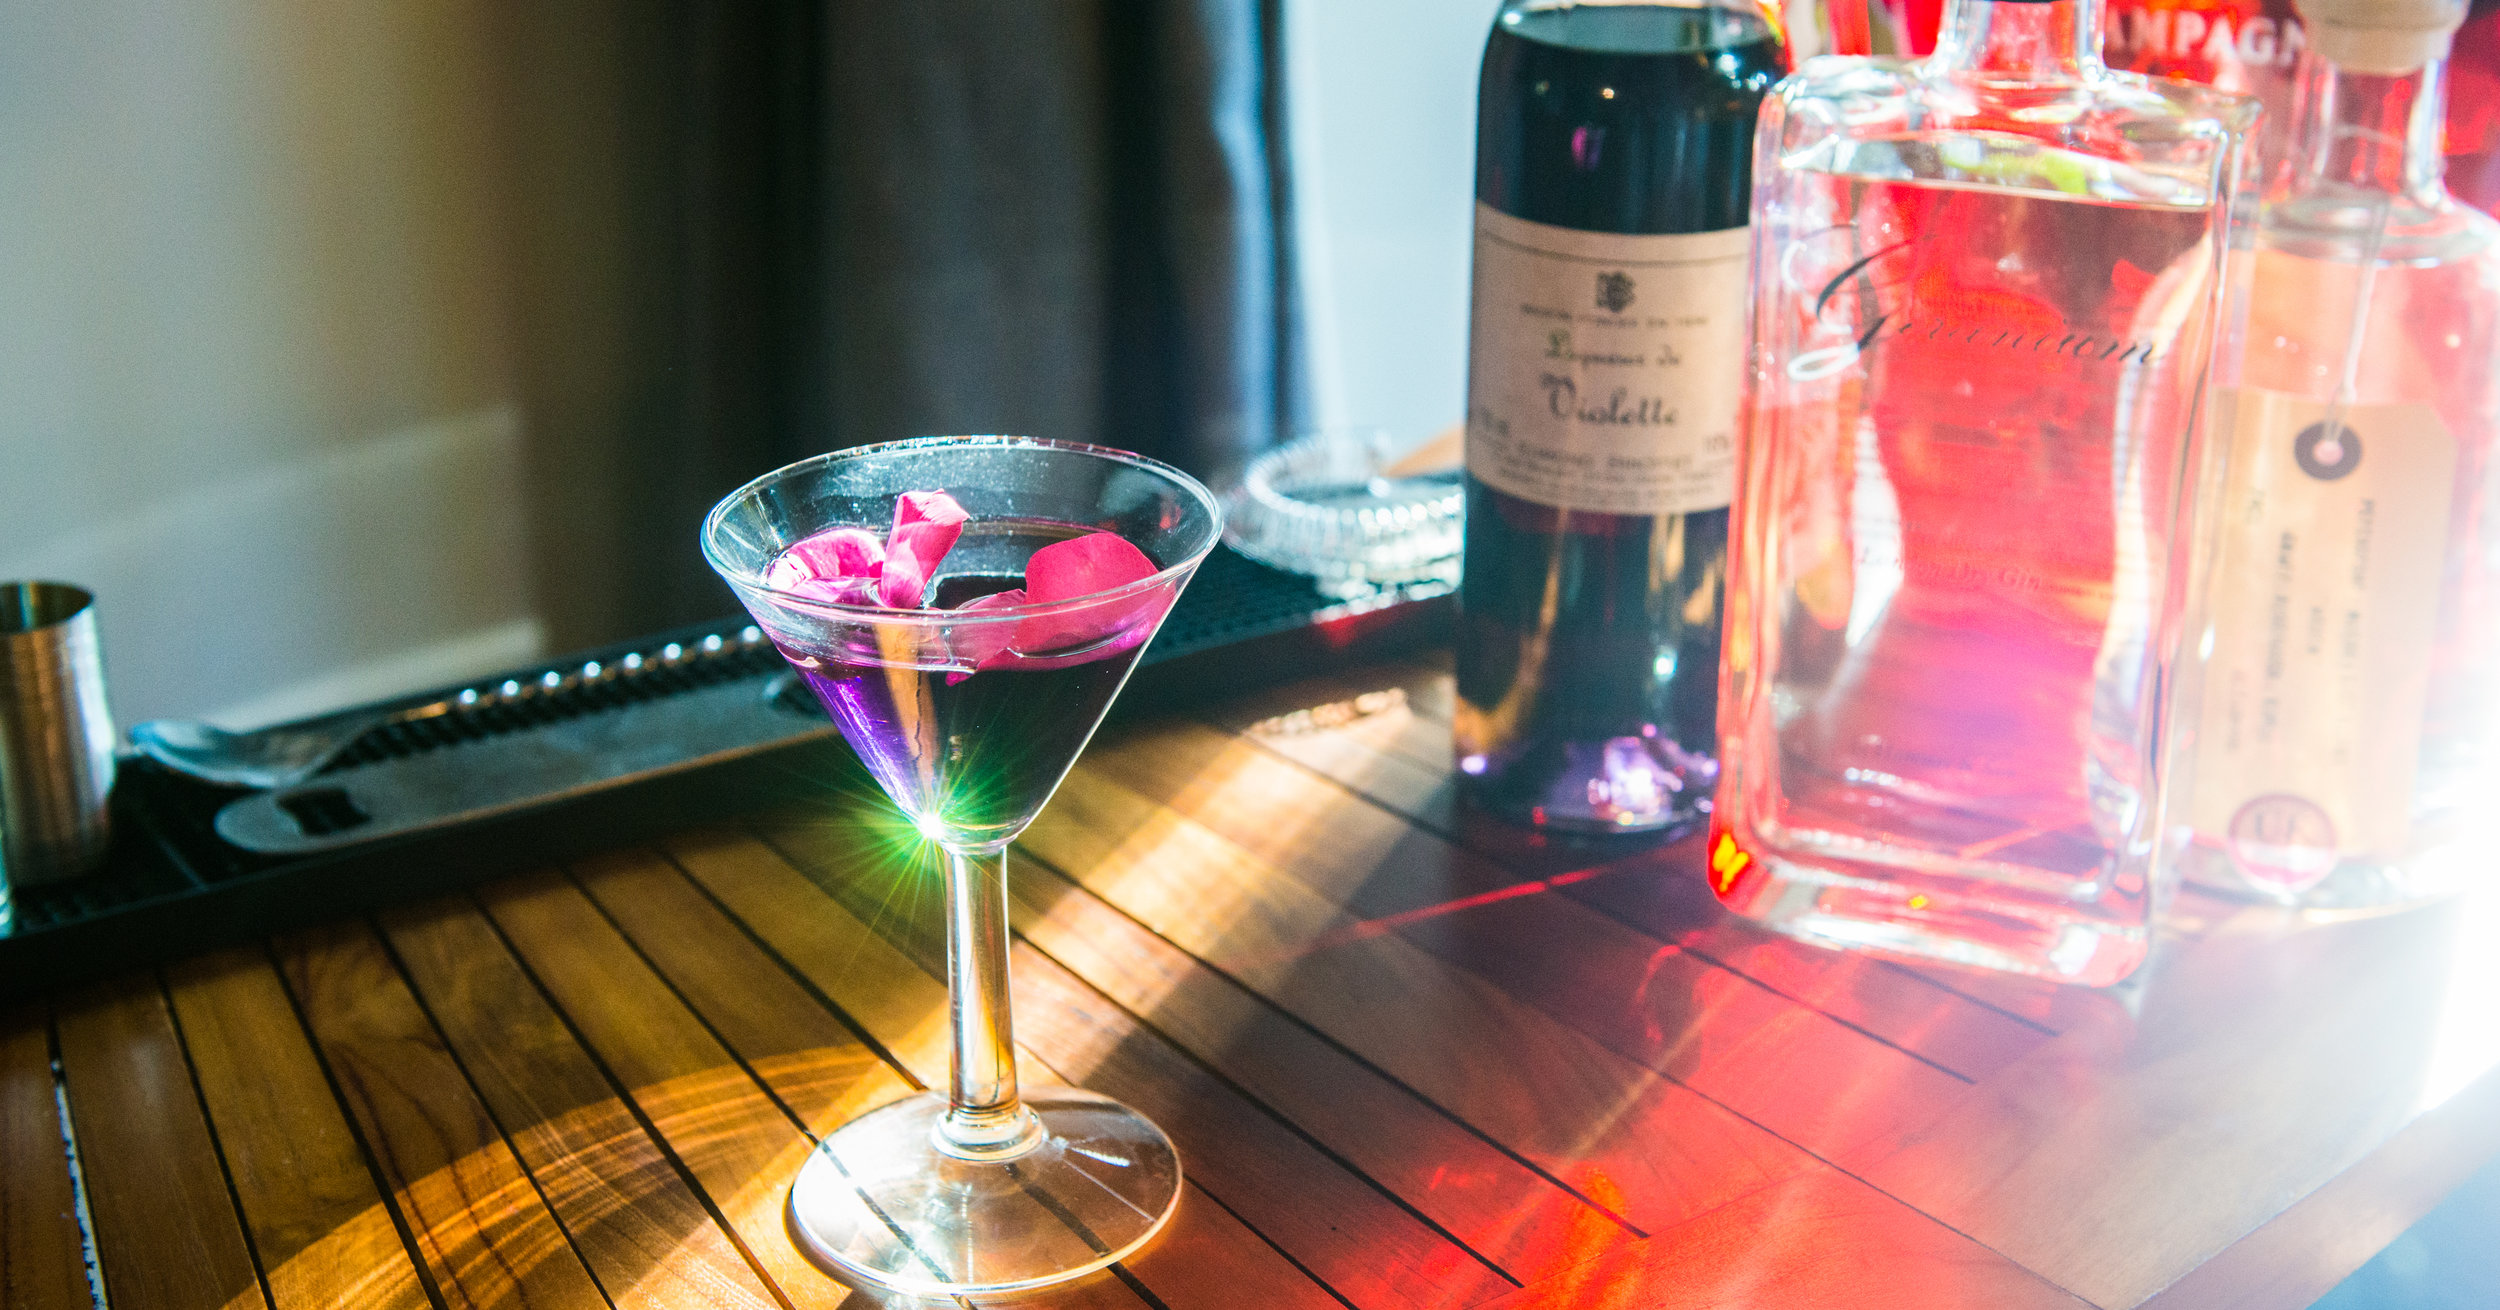 Copy of Rose petal martini. Have four alcoholic cocktails made, from premium spirits and mixers, and served to you at table